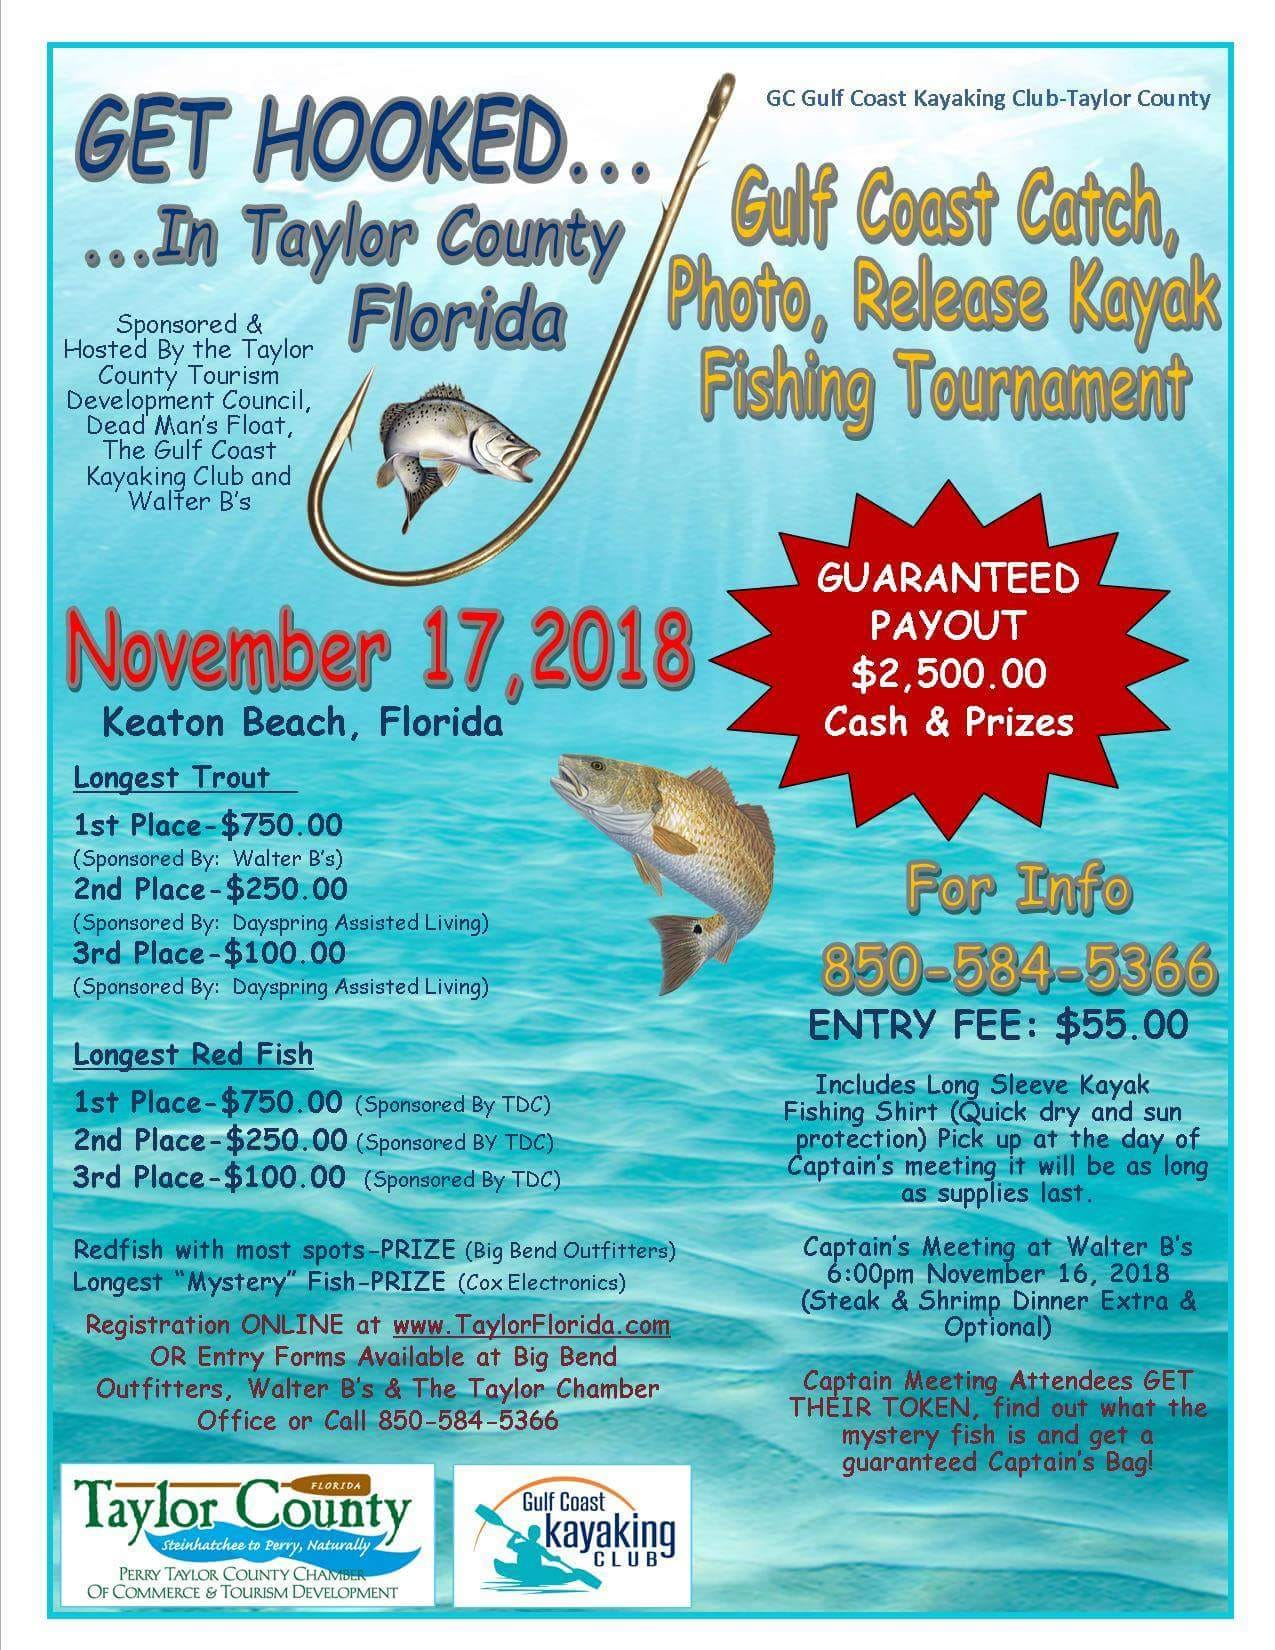 Gulf Coast Kayak Fishing Tournament